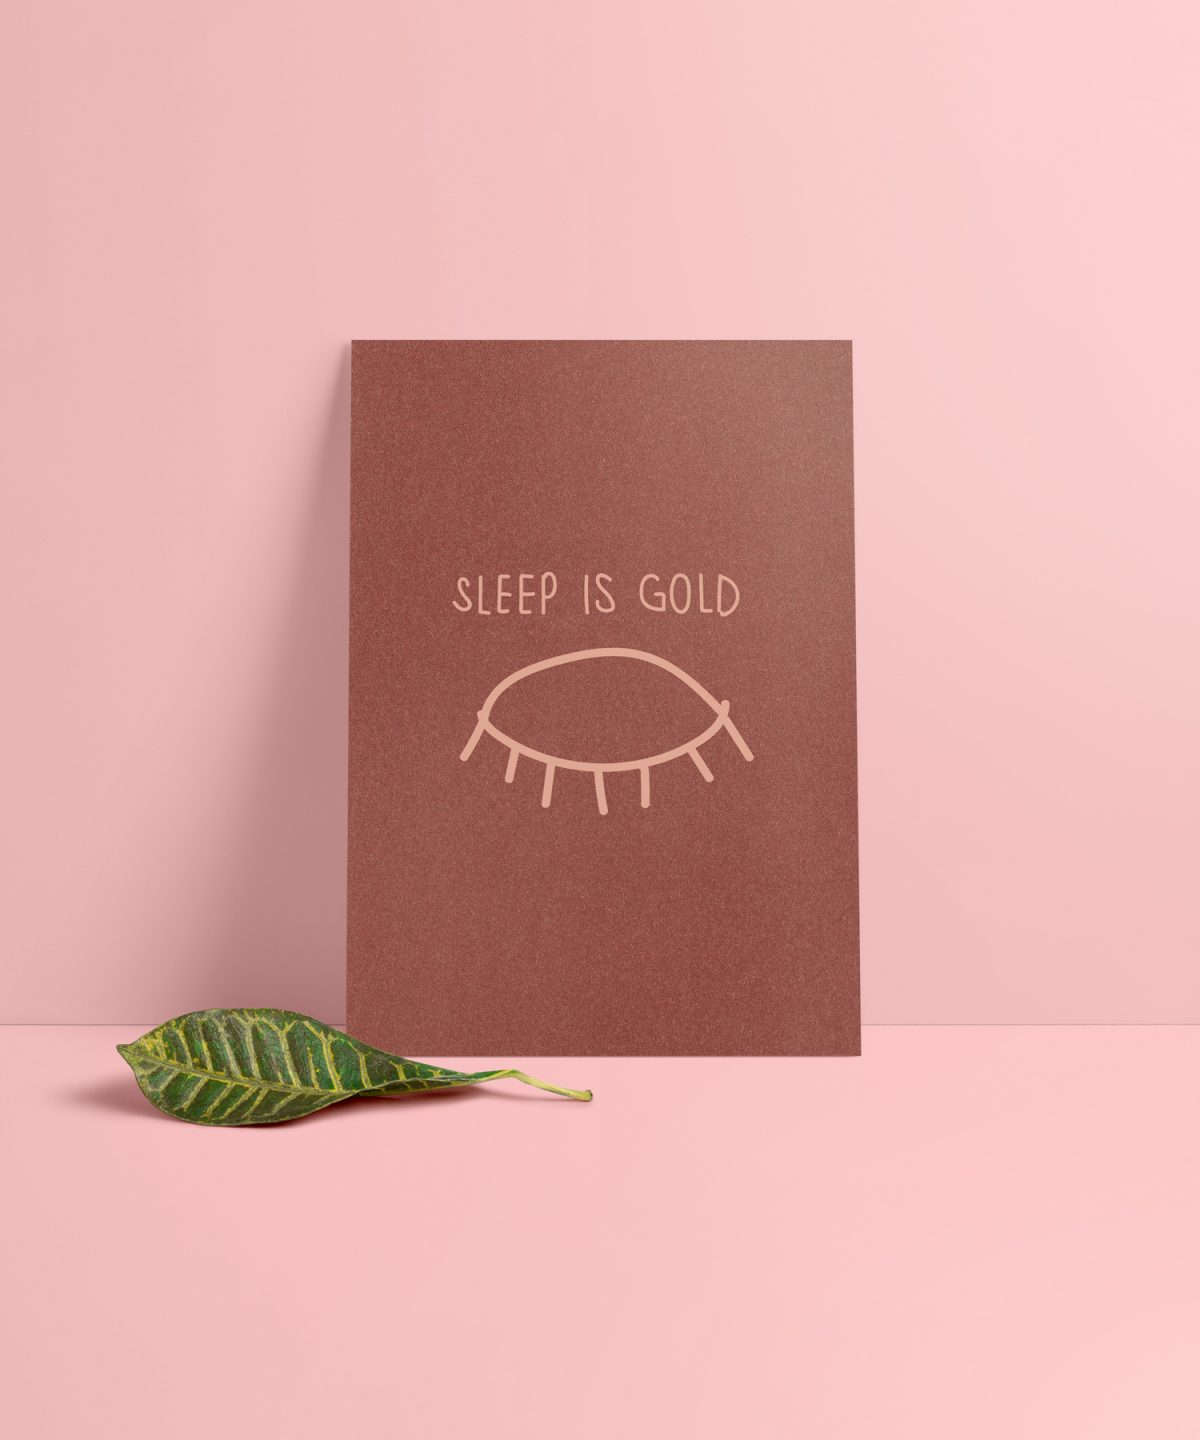 Sleep is Gold Karte Vorderseite. Schimmerndes Metallic Papier in Kupfer.